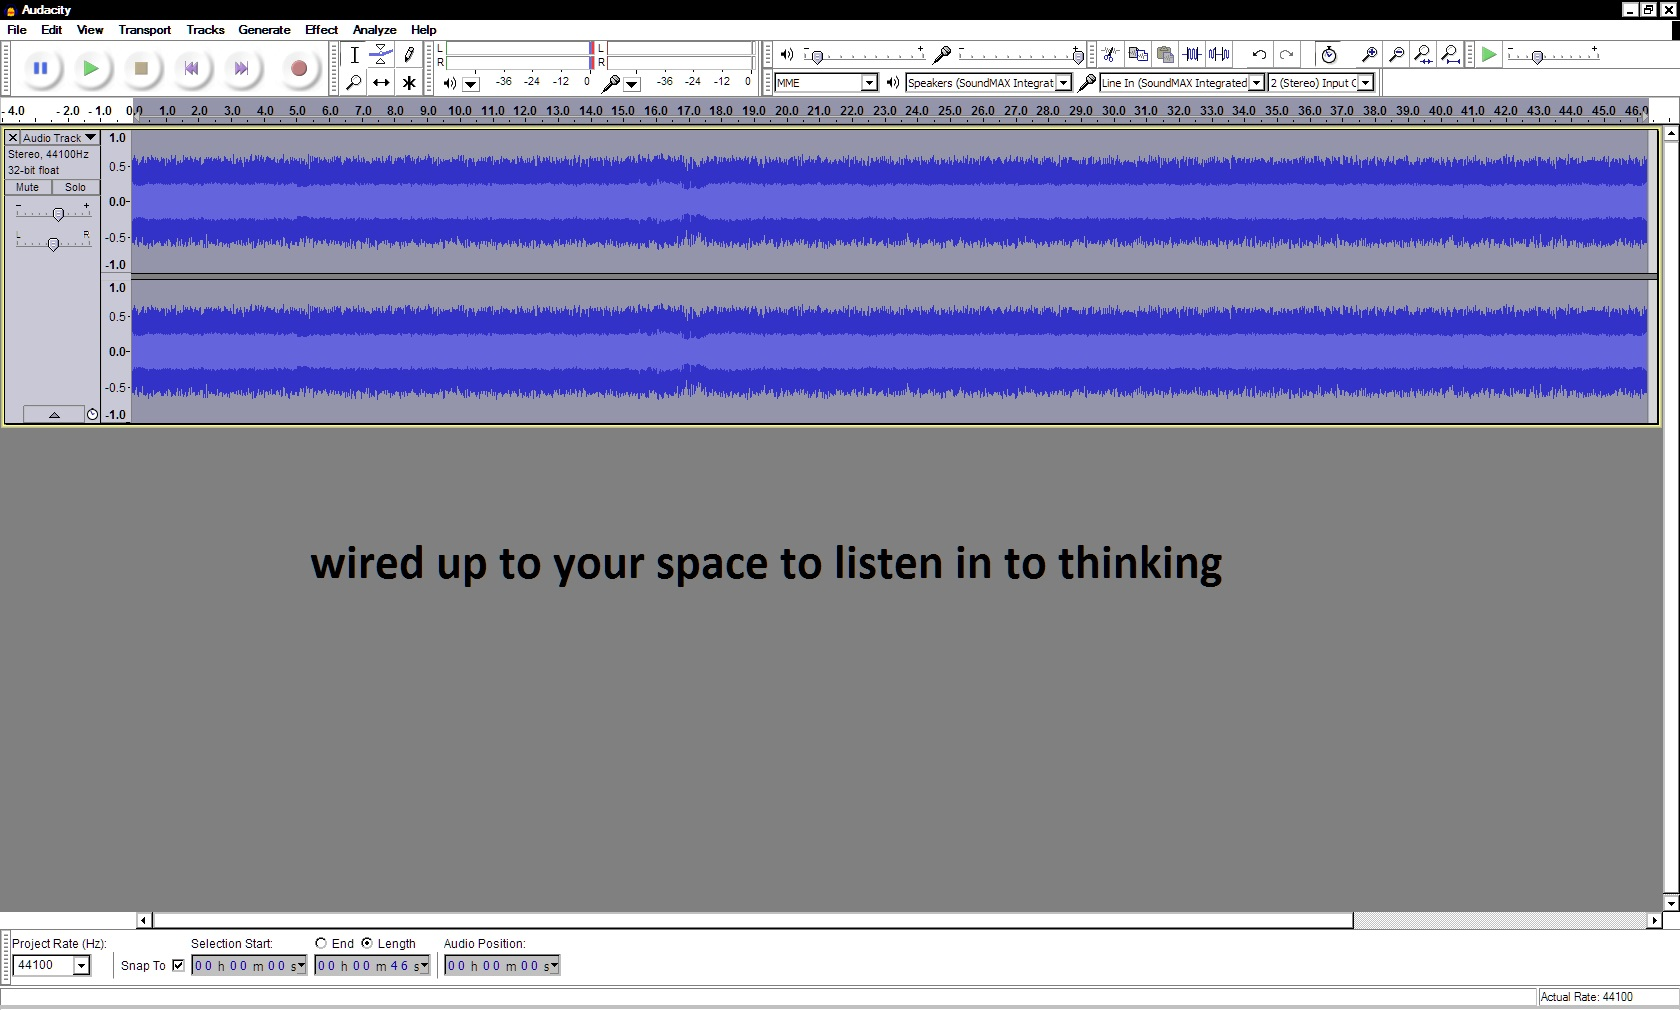 recording linking up to space 24 feb 2016